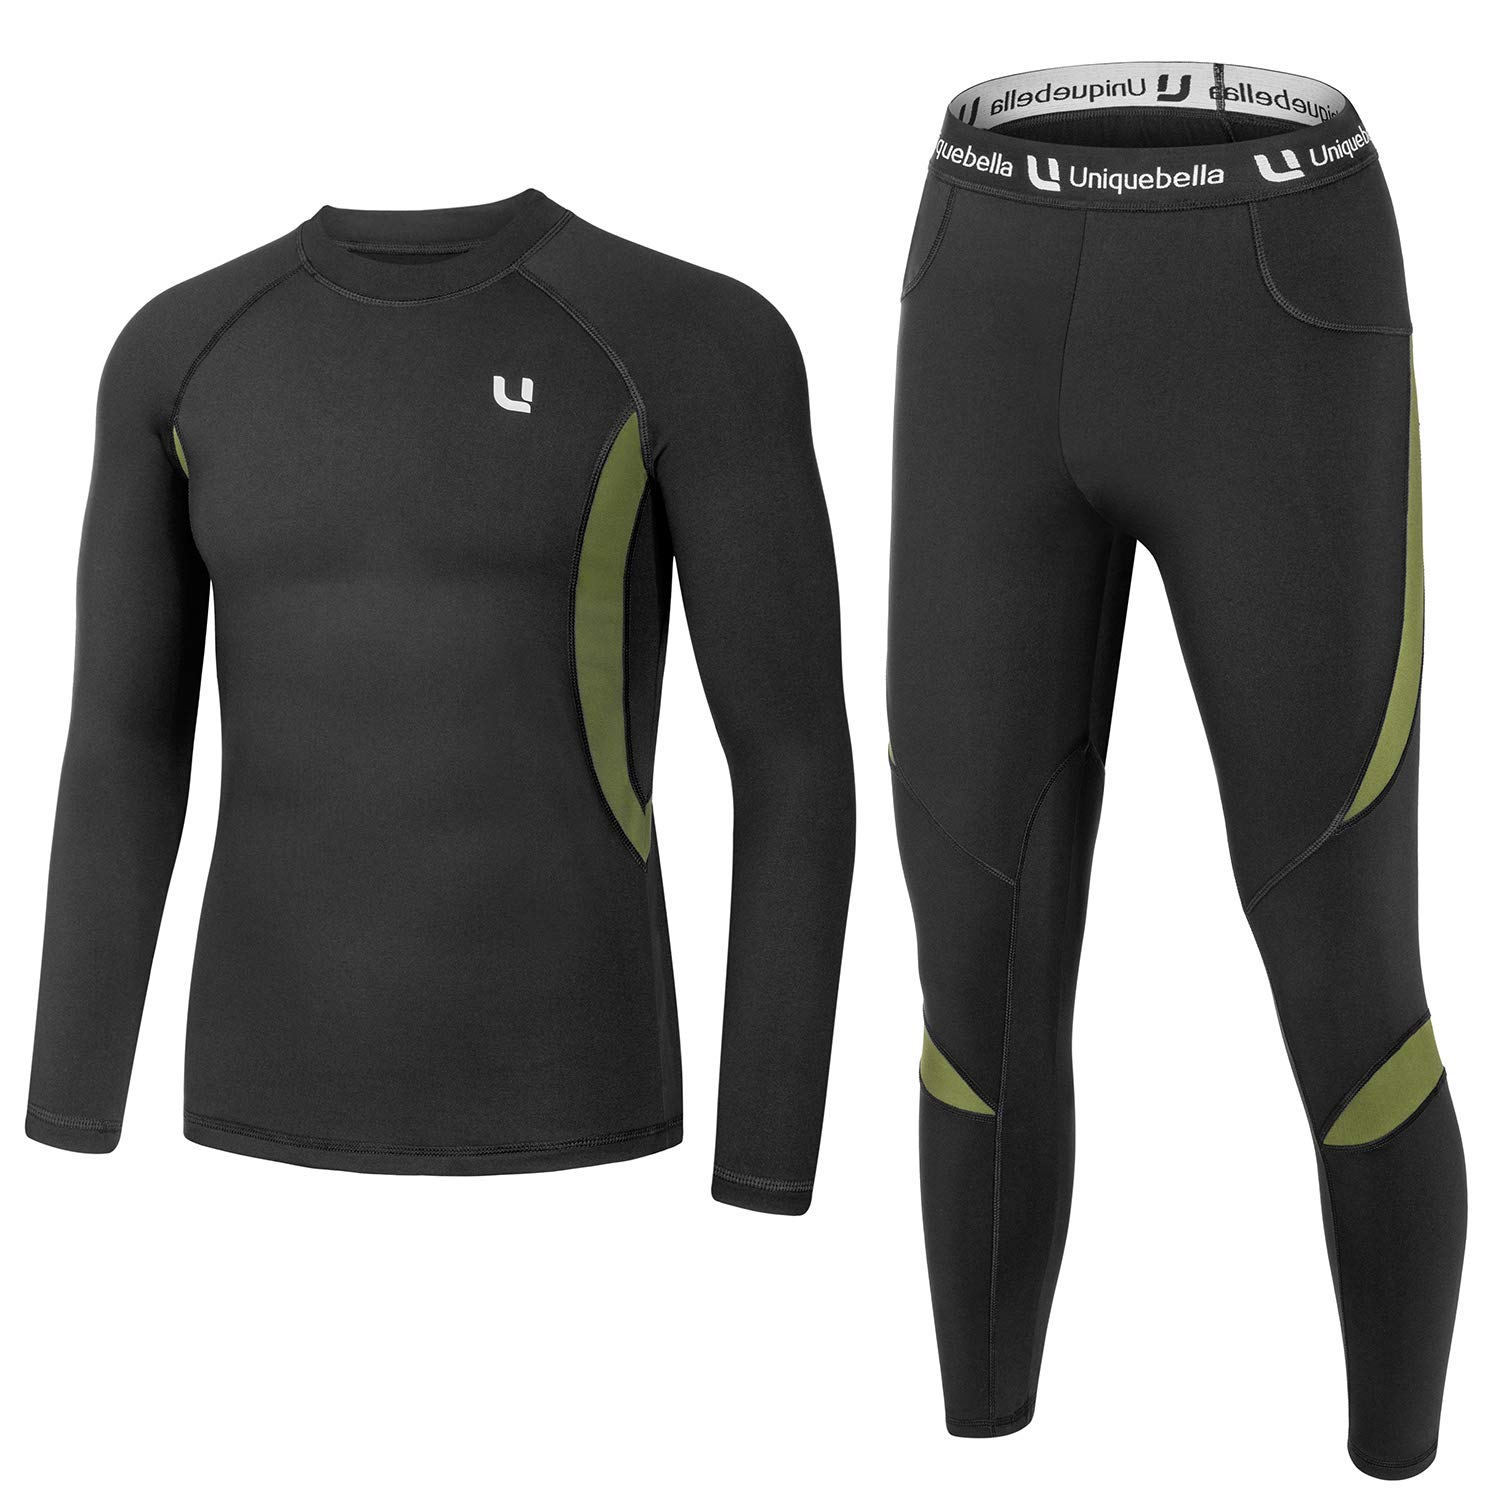 UNIQUEBELLA Men's Thermal Underwear Sets Top & Long Johns Fleece Sweat Quick Drying Thermo (Sets Black, XXL) by UNIQUEBELLA